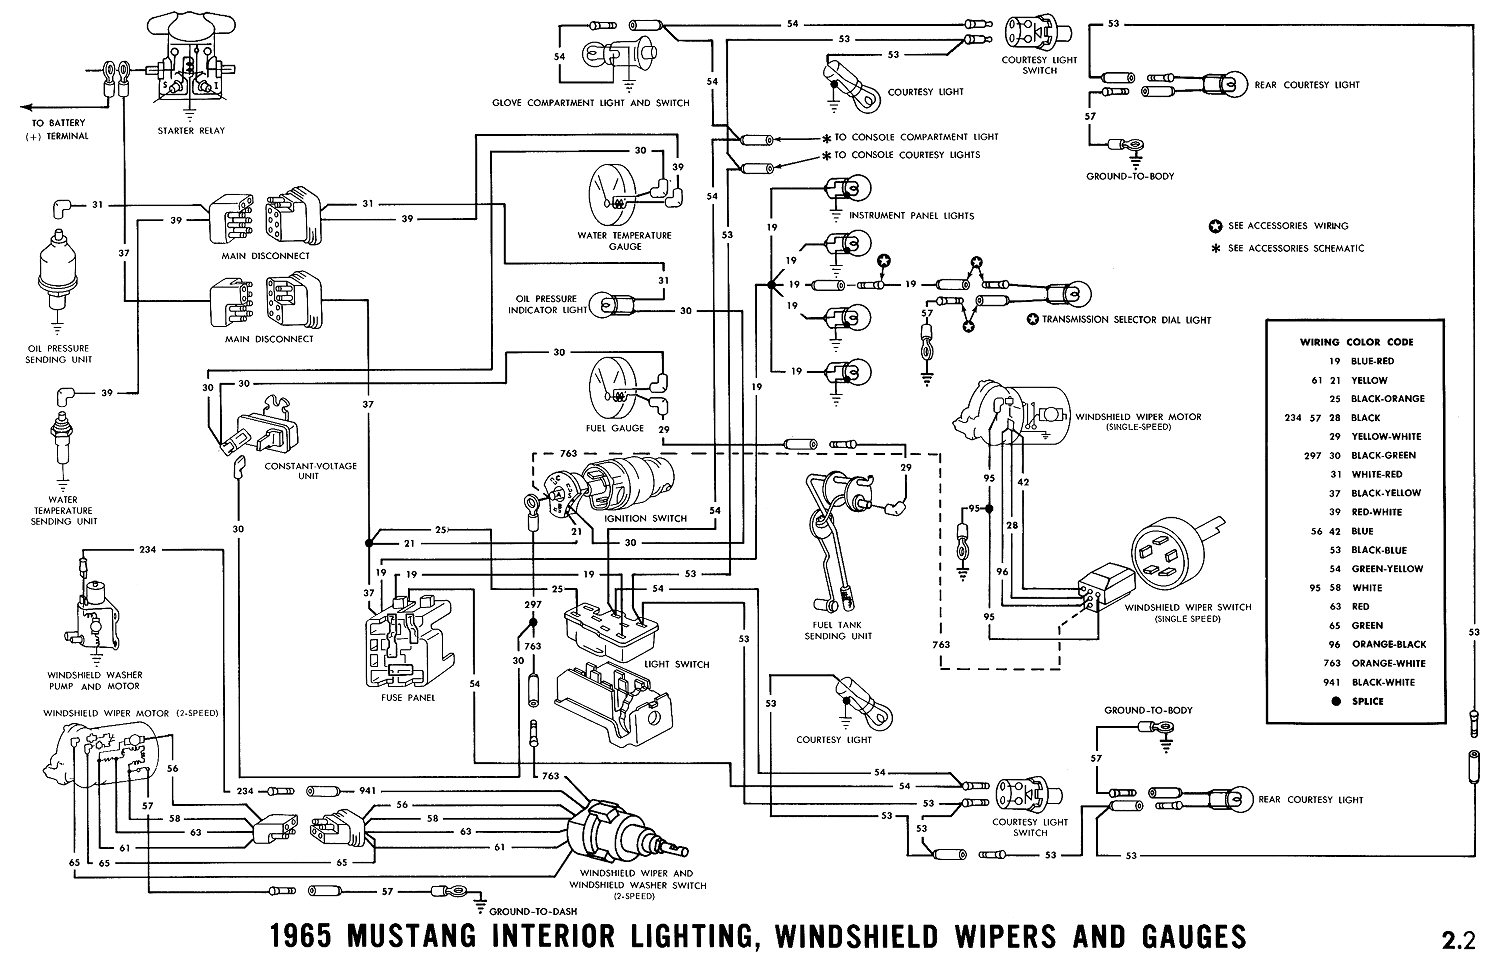 1971 Mustang Headlight Wiring Diagram Modern Design Of Chevy Wiper Engine Layout Third Level Rh 17 16 11 Jacobwinterstein Com 01 Gm Switch